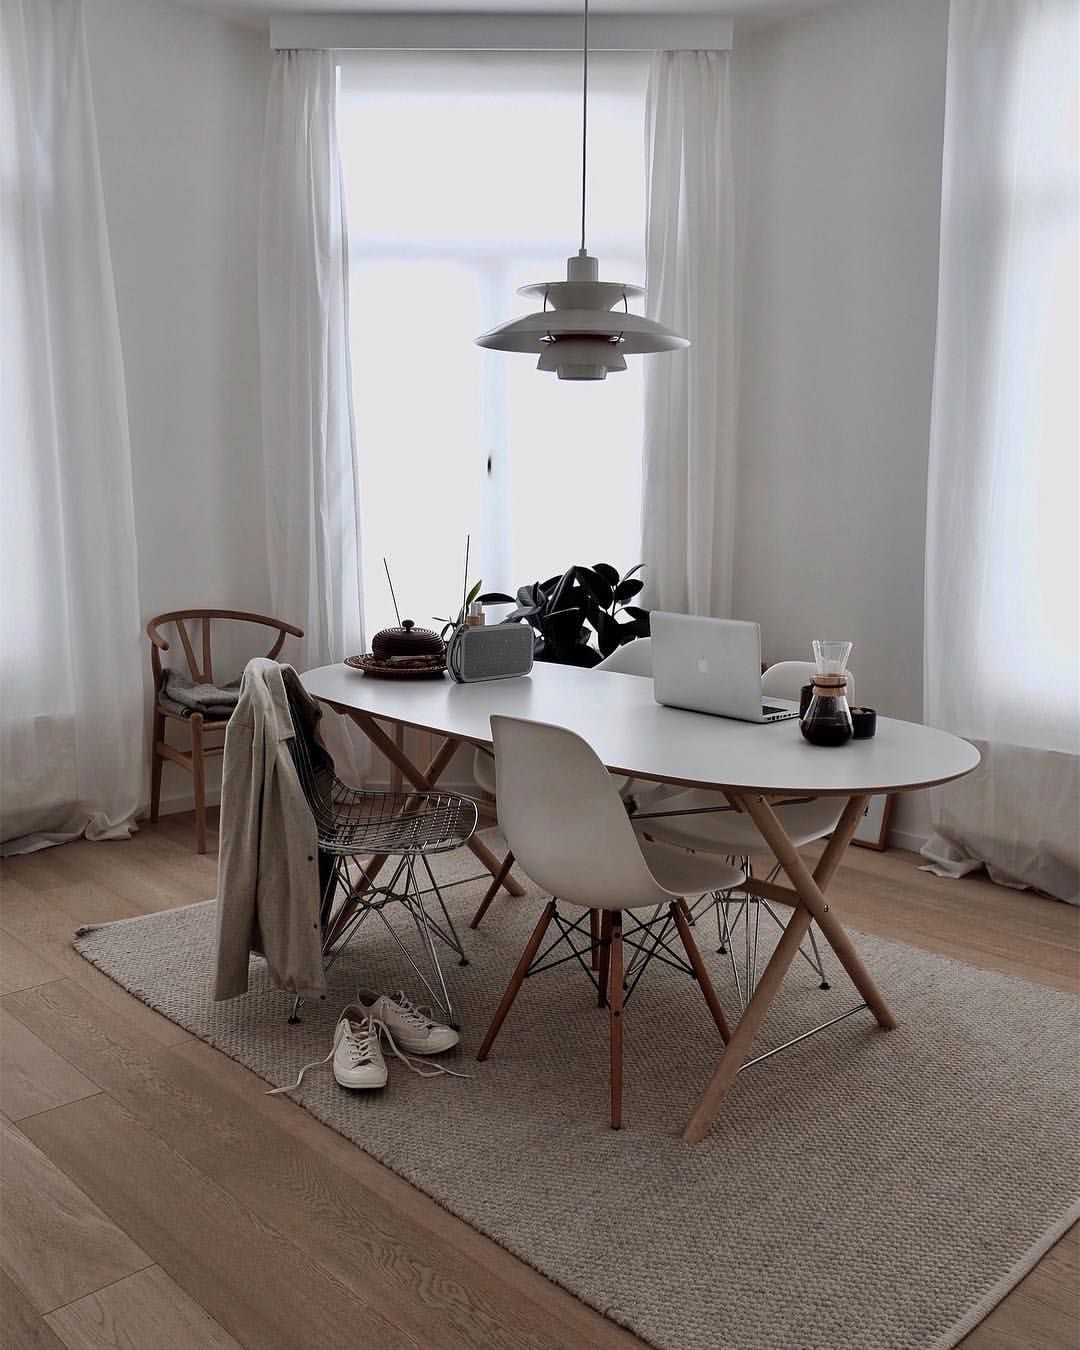 Ikea 'Slähult' Dining Table @tibods In 2019